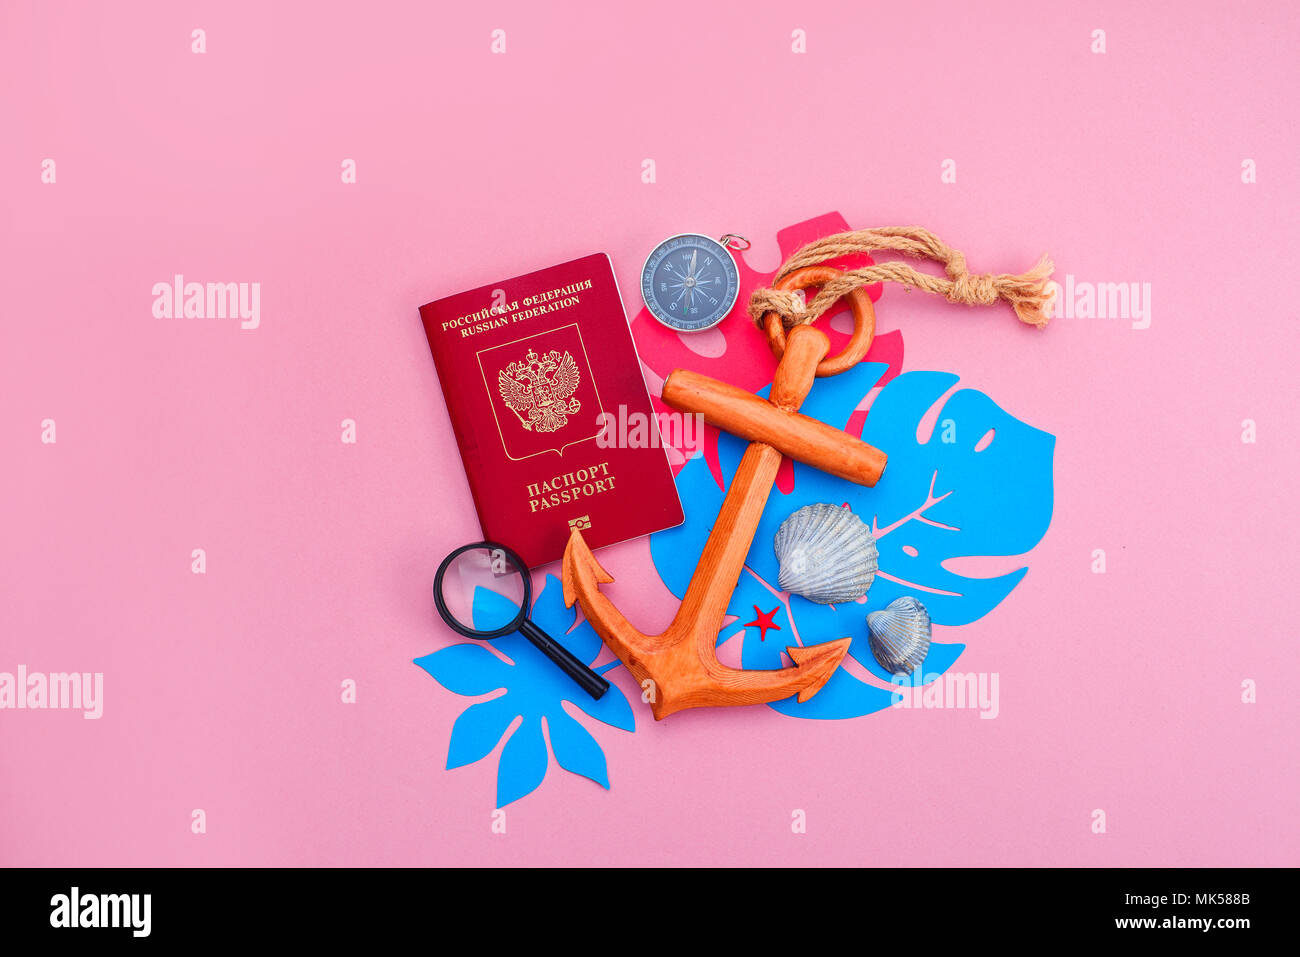 Colorful travel and vacation concept on a bright pink background. Tropical leaves, wooden anchor, passport, compass and seashells with copy space. - Stock Image